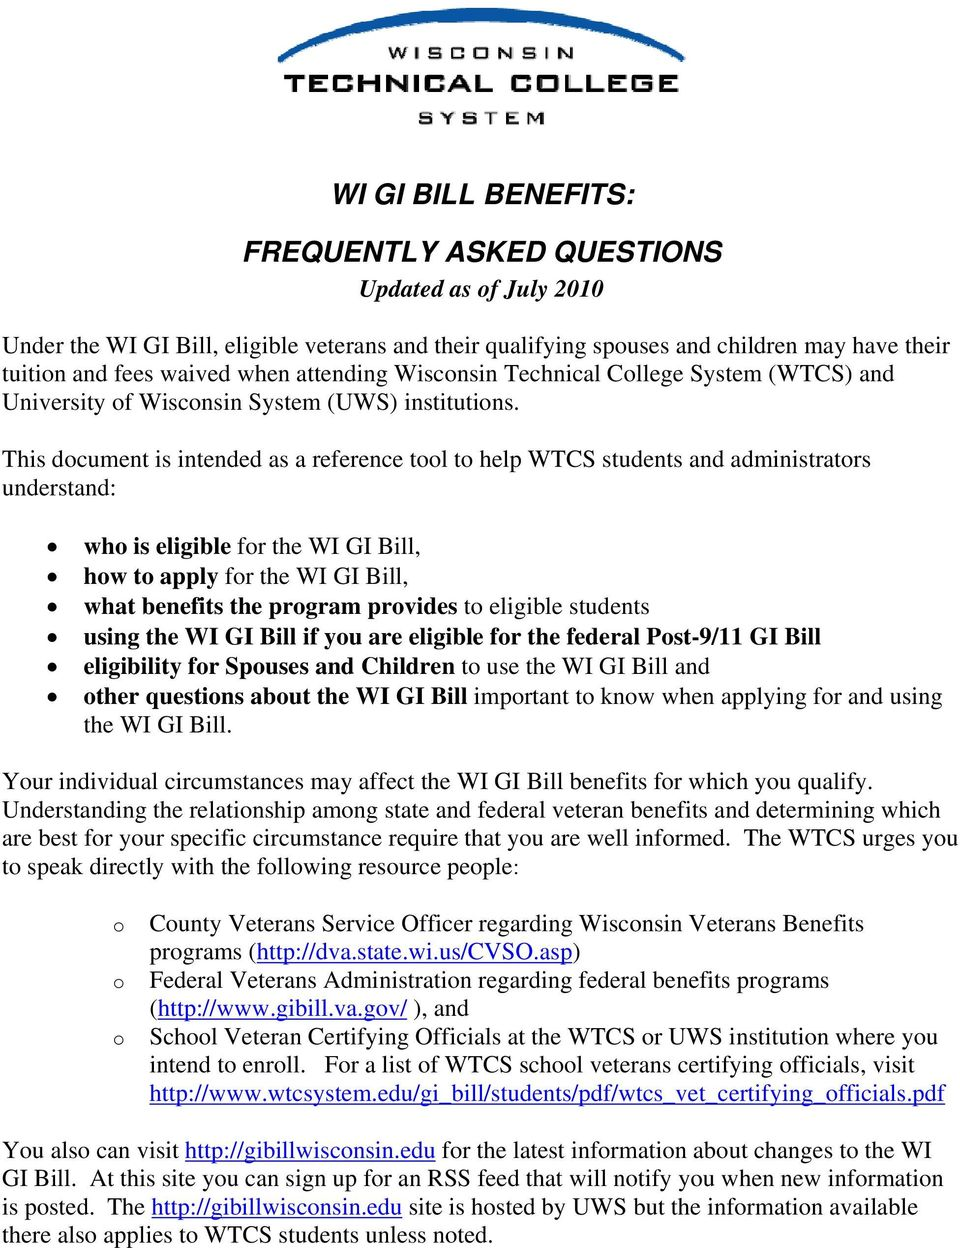 This document is intended as a reference tool to help WTCS students and administrators understand: who is eligible for the WI GI Bill, how to apply for the WI GI Bill, what benefits the program